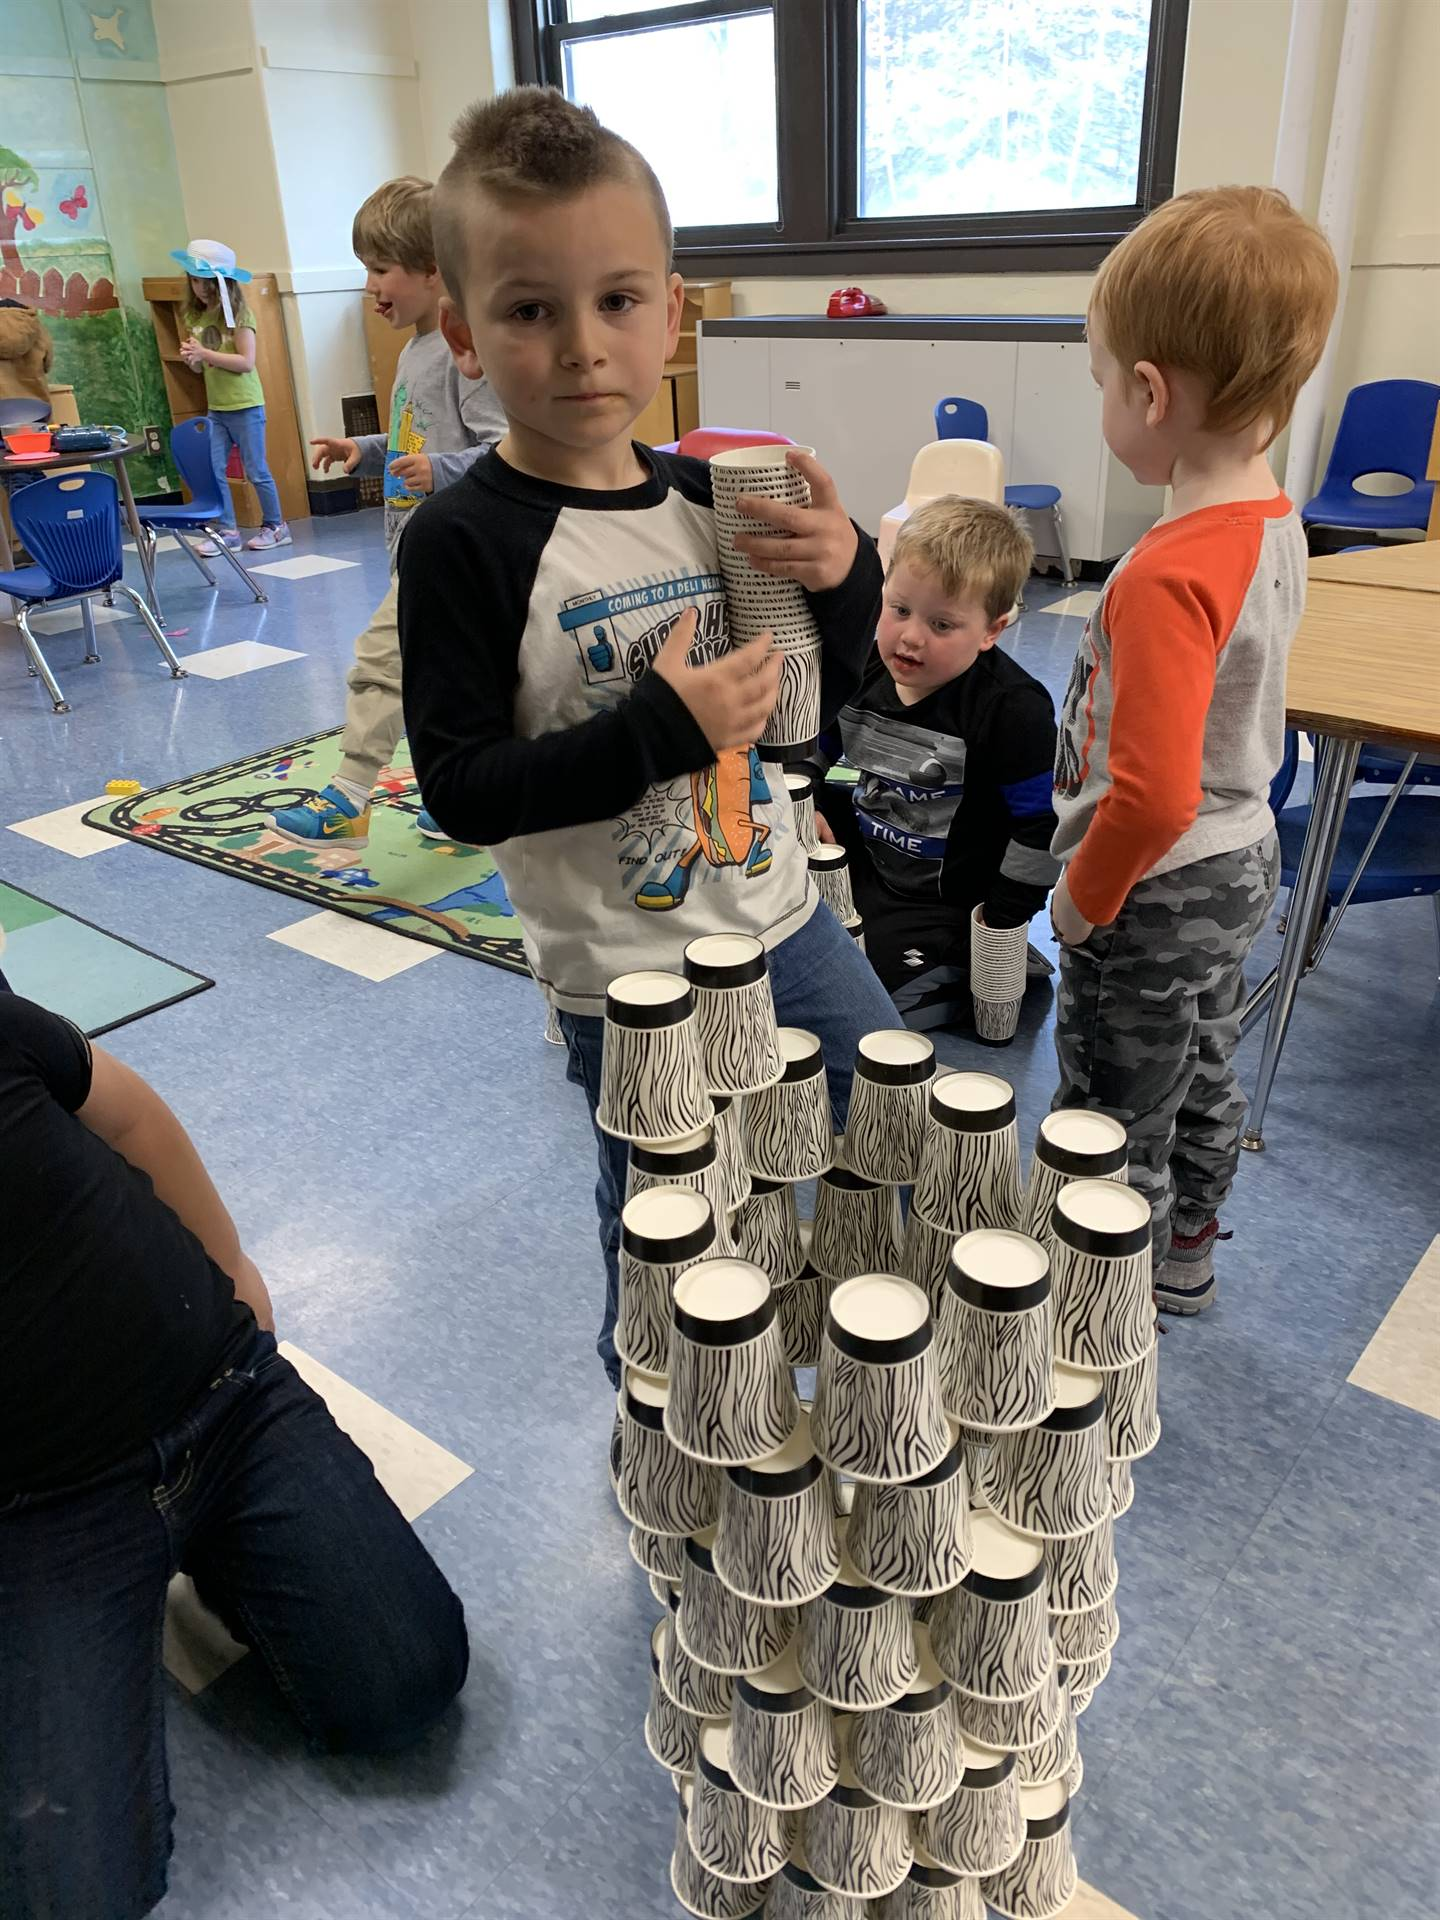 A student stands with his cup tower.